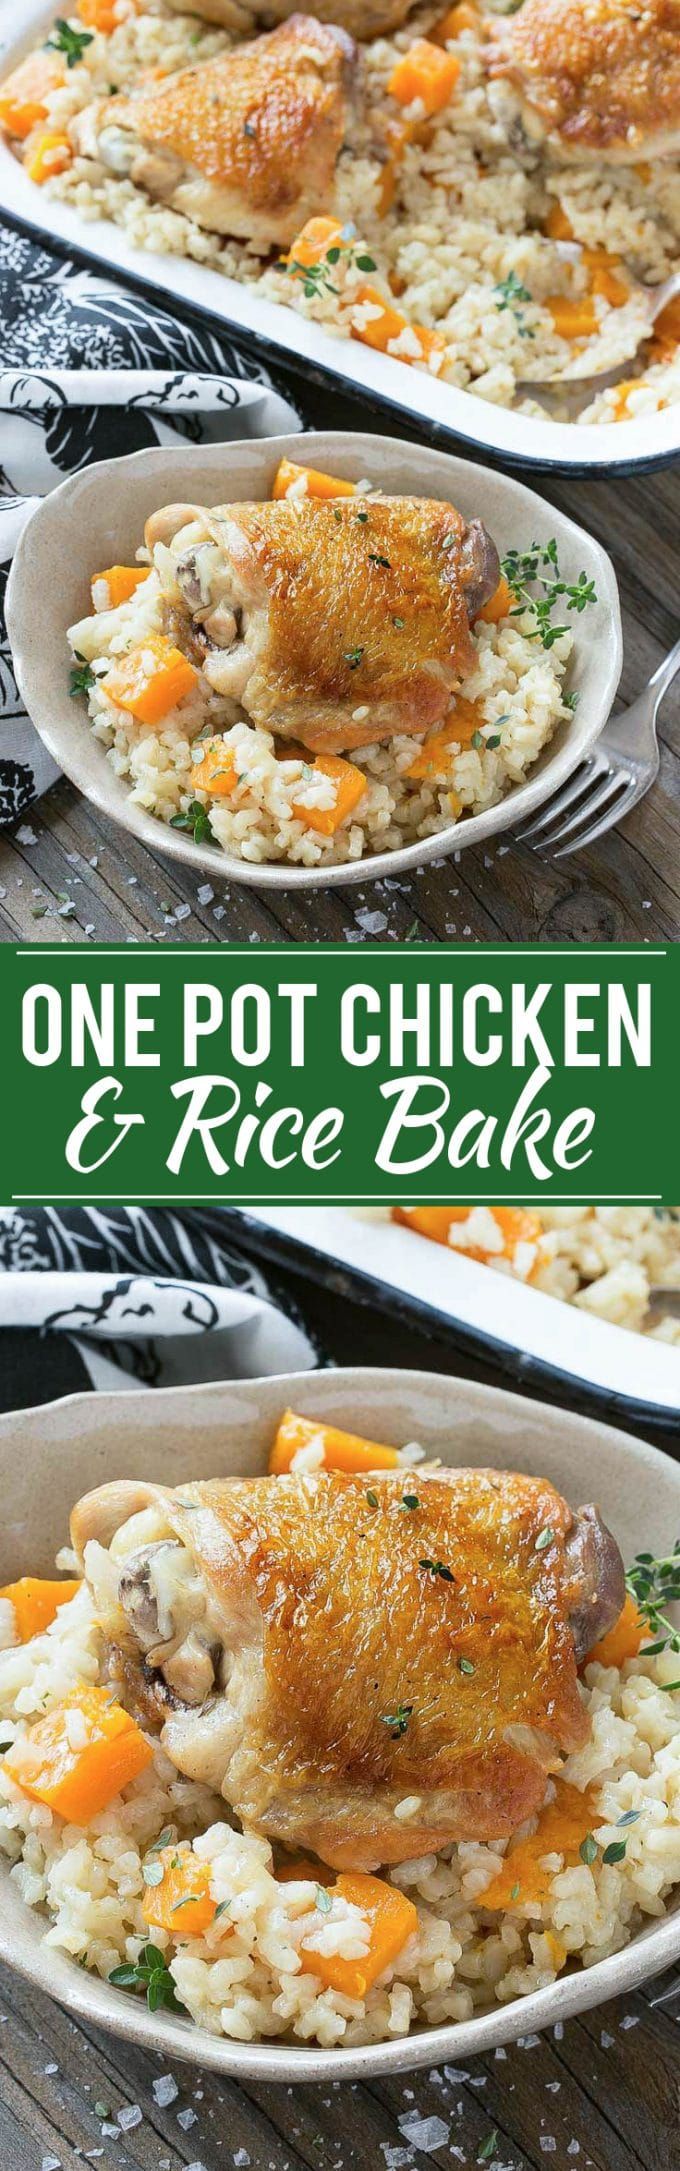 One Pot Oven Chicken and Rice Bake Recipe | One Pot Chicken with Creamy Parmesan Rice | One Pot Chicken and Rice | Creamy Parmesan Rice | Chicken Rice and Butternut Squash Bake